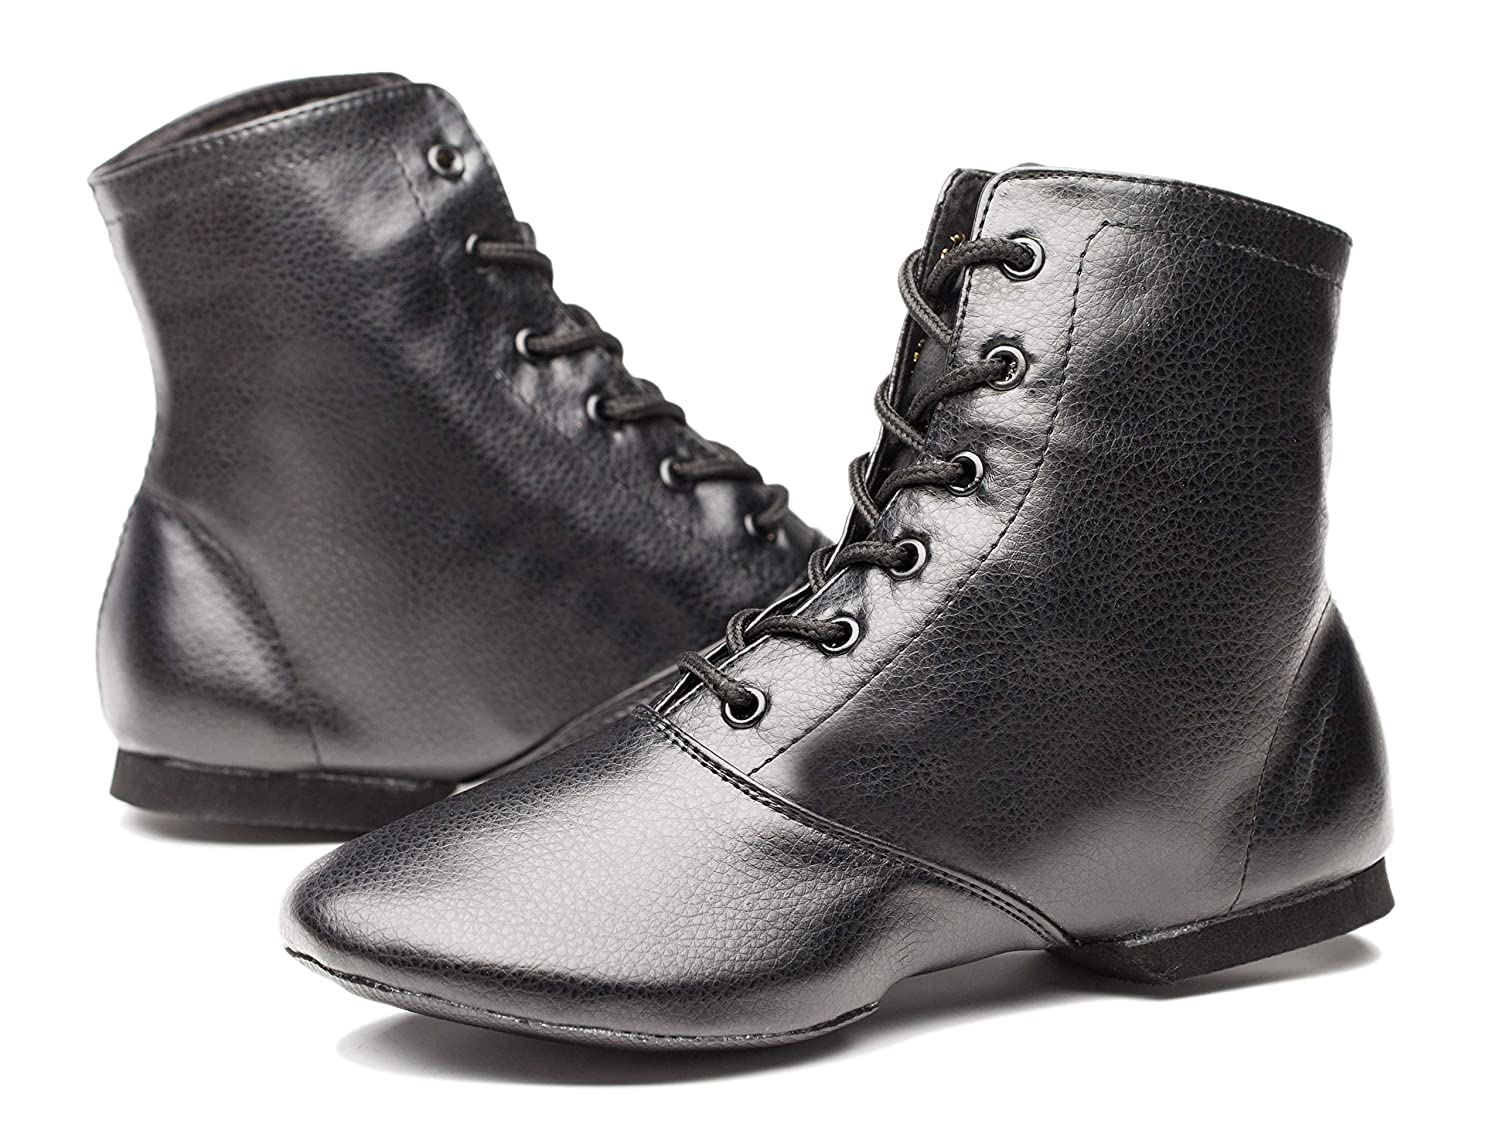 Edwardian Shoes & Boots | Titanic Shoes Joocare Womens Black Leather Split Sole Jazz Dance Boots Shoes(Adult/Unisex for Big Kid) $19.99 AT vintagedancer.com